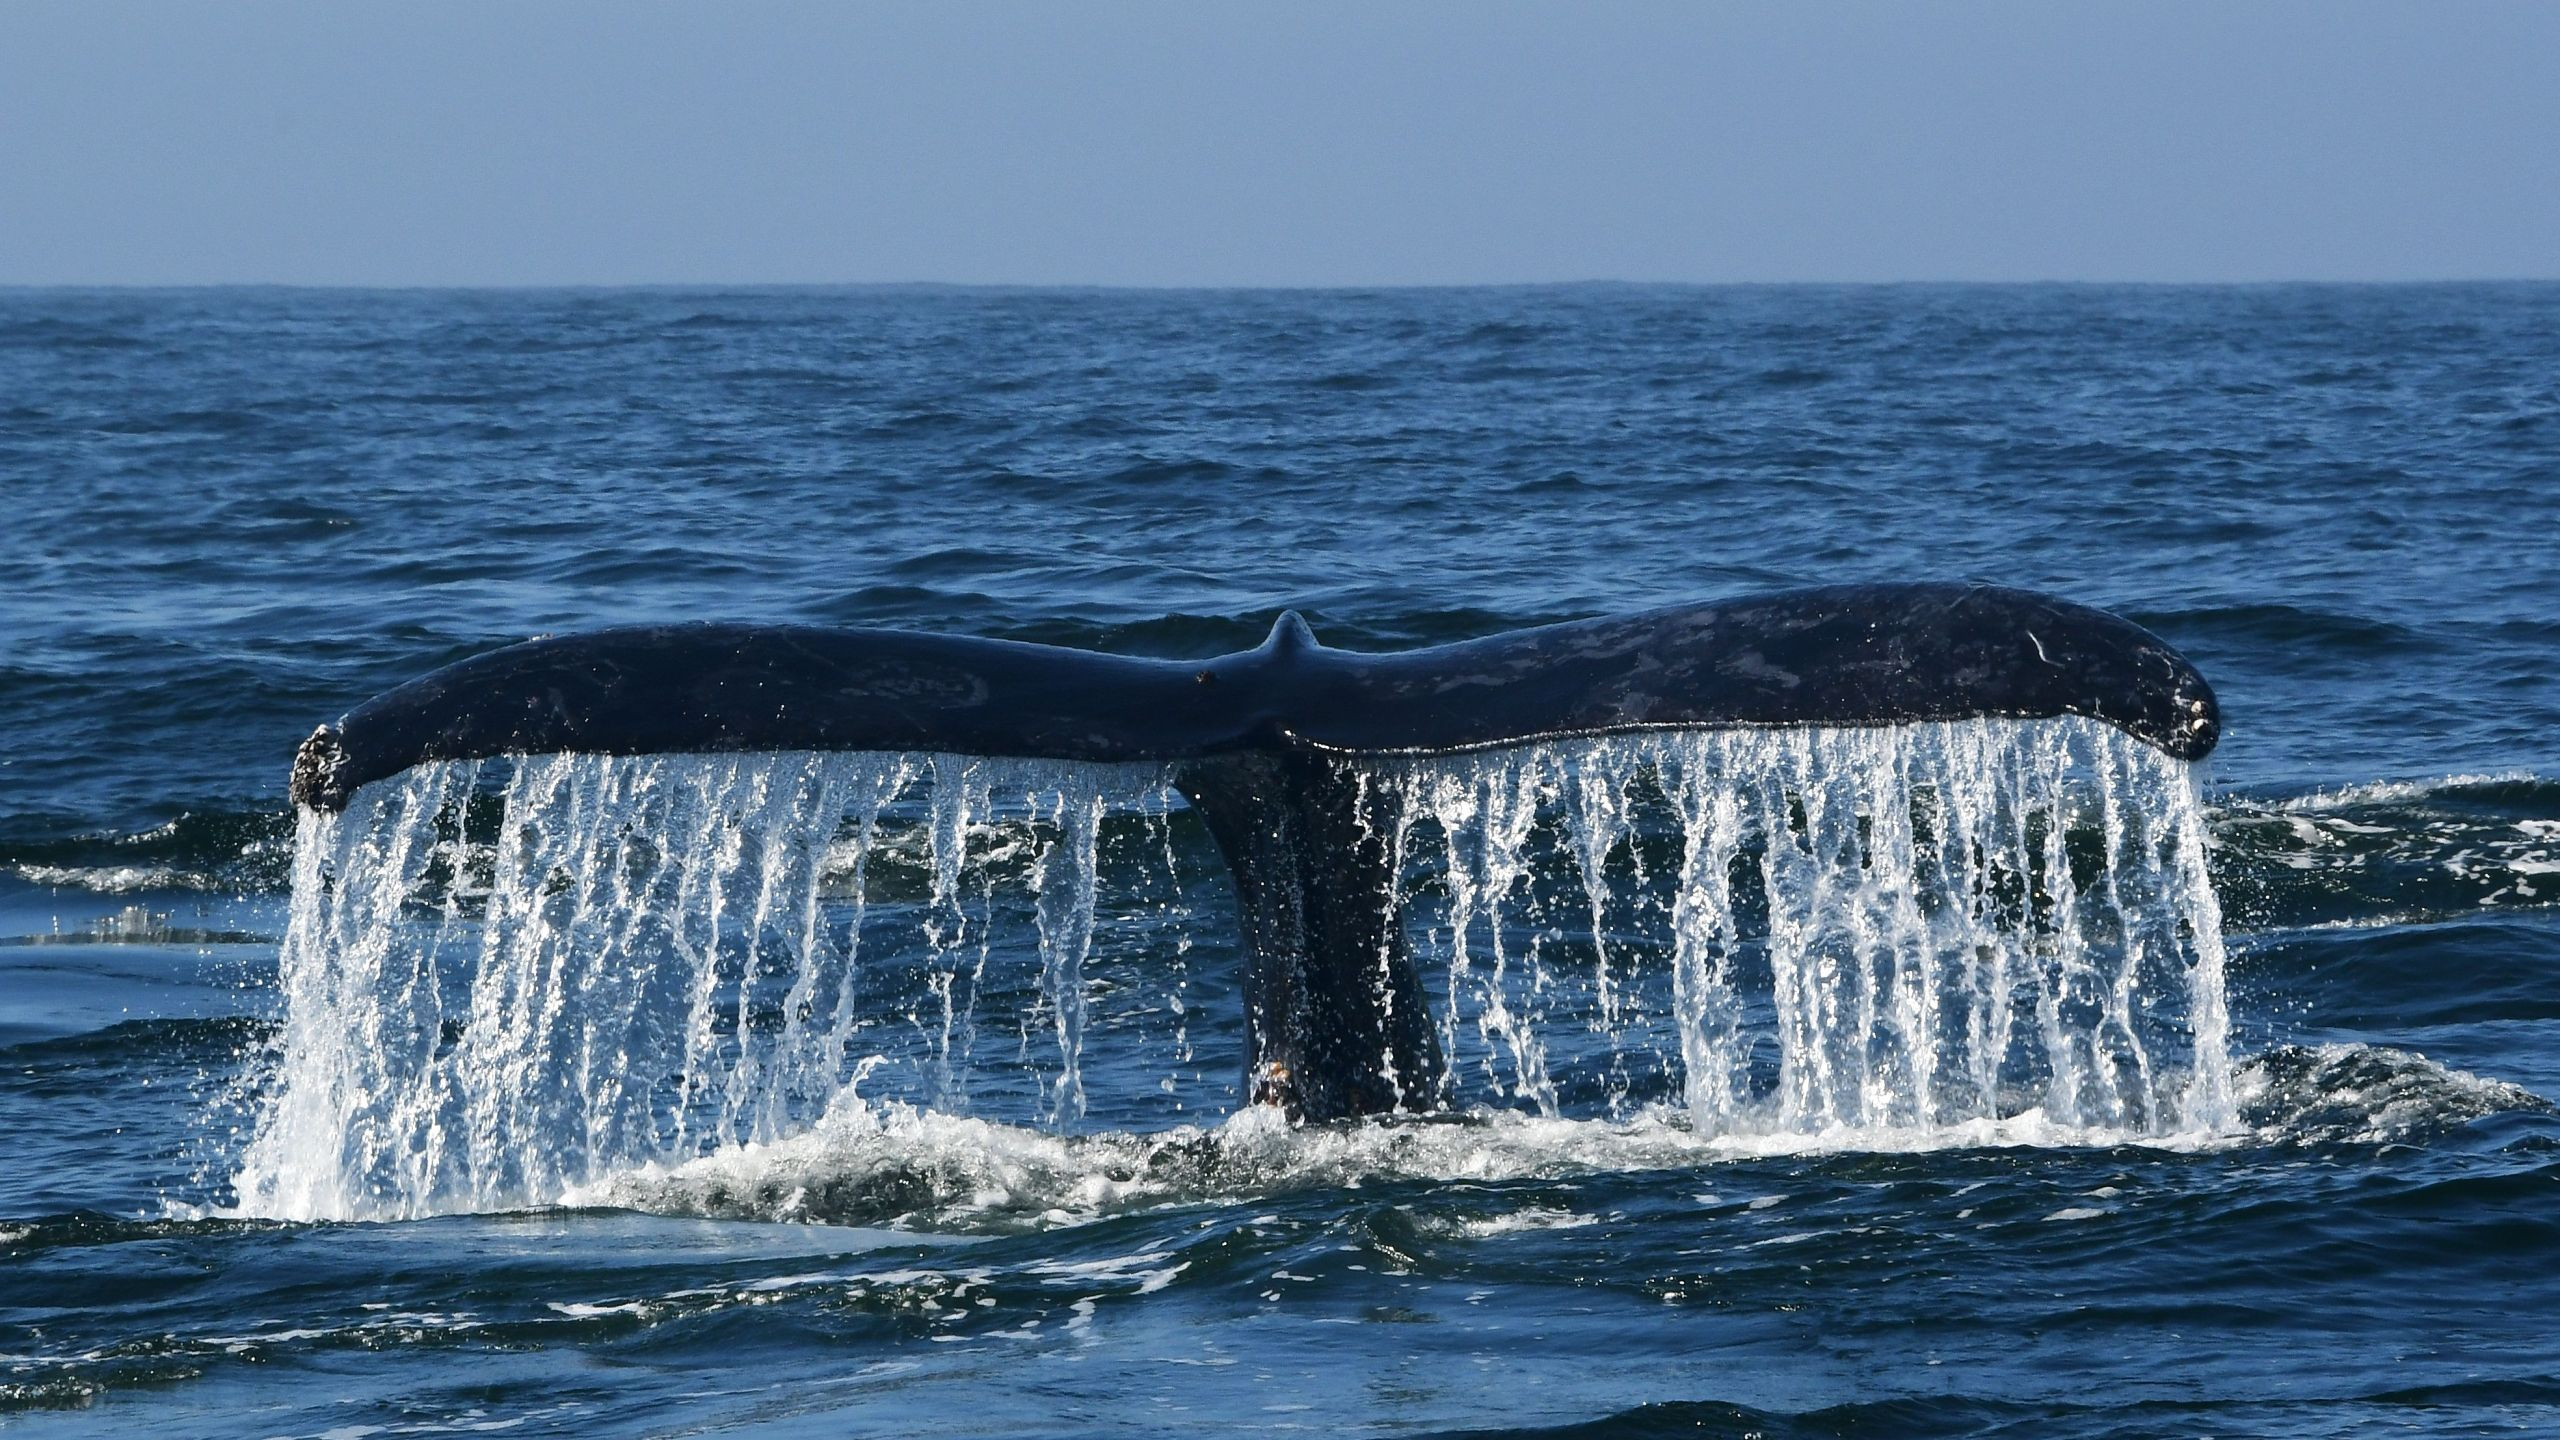 A humpback whale navigates the waters of Monterey Bay, Calif., on Sept. 21, 2018. (Credit: EVA HAMBACH/AFP/Getty Images)